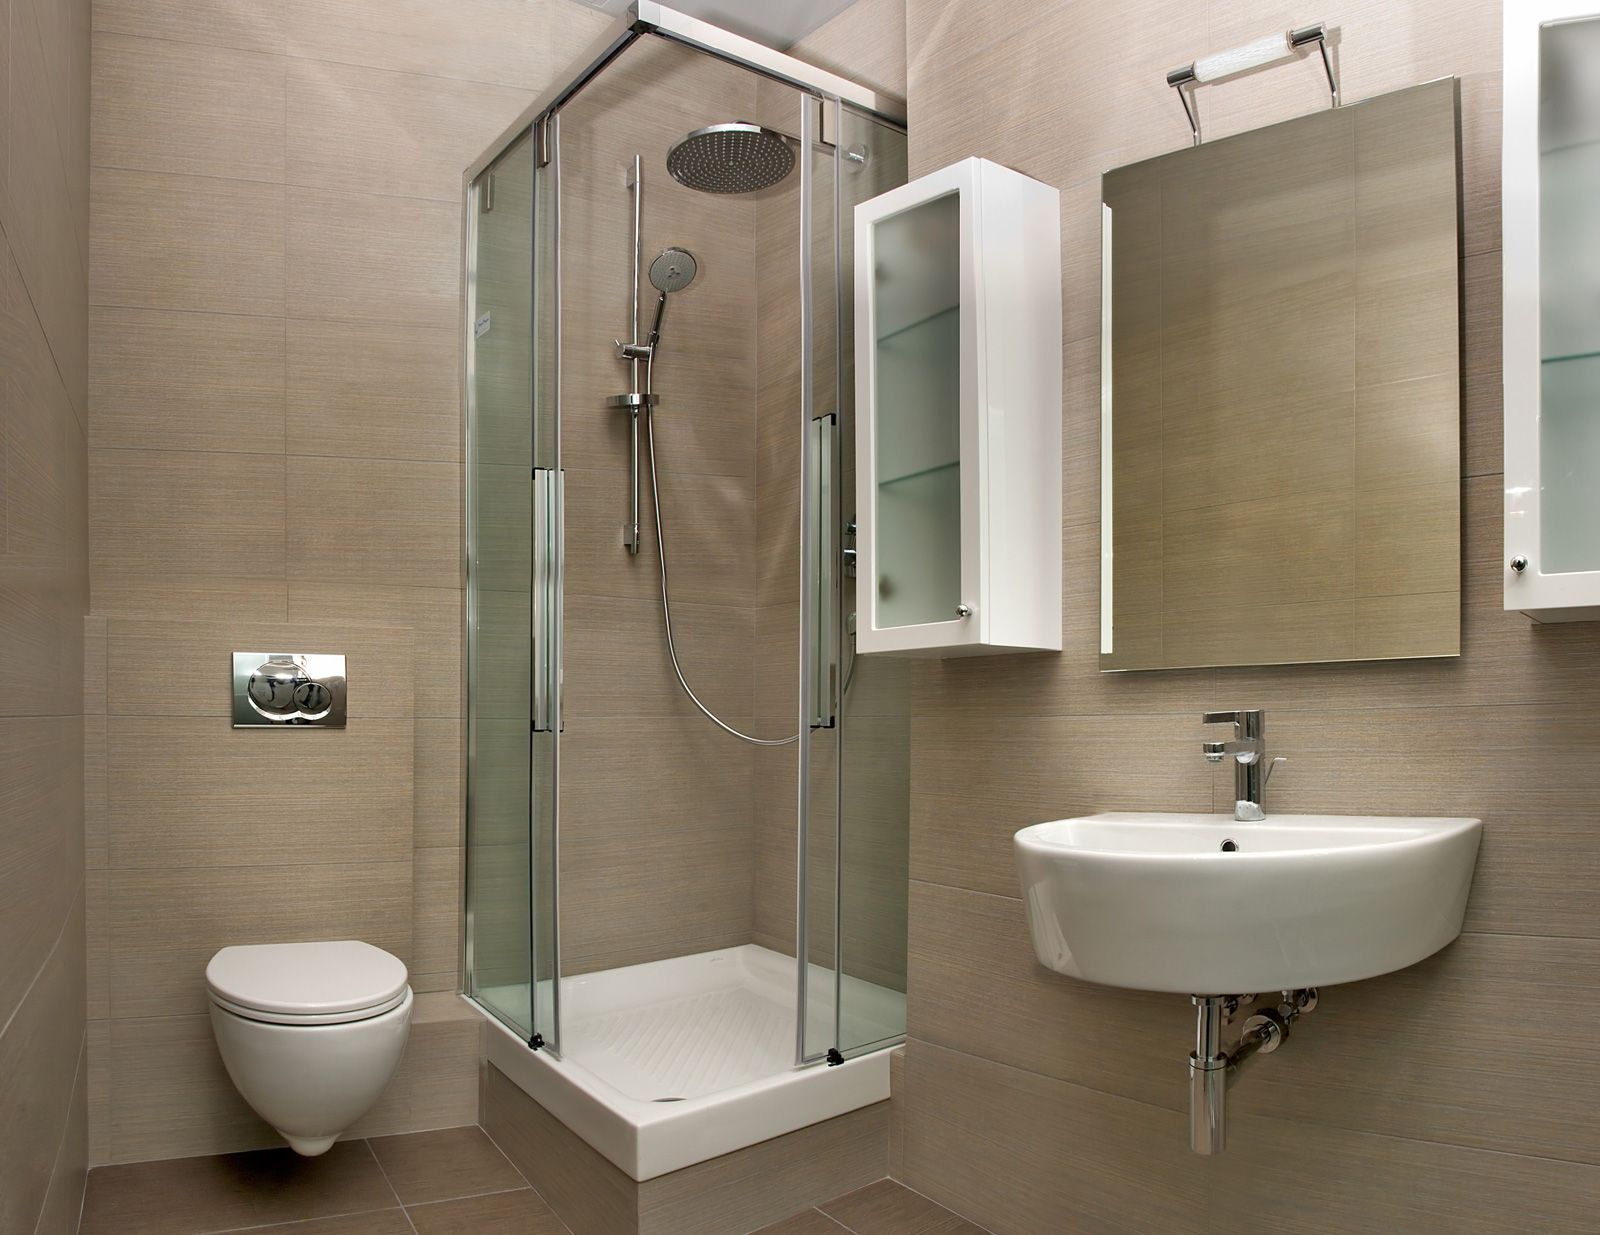 Tiny Bathrooms With Shower shower ideas for small bathroom to inspire you on how to decorate